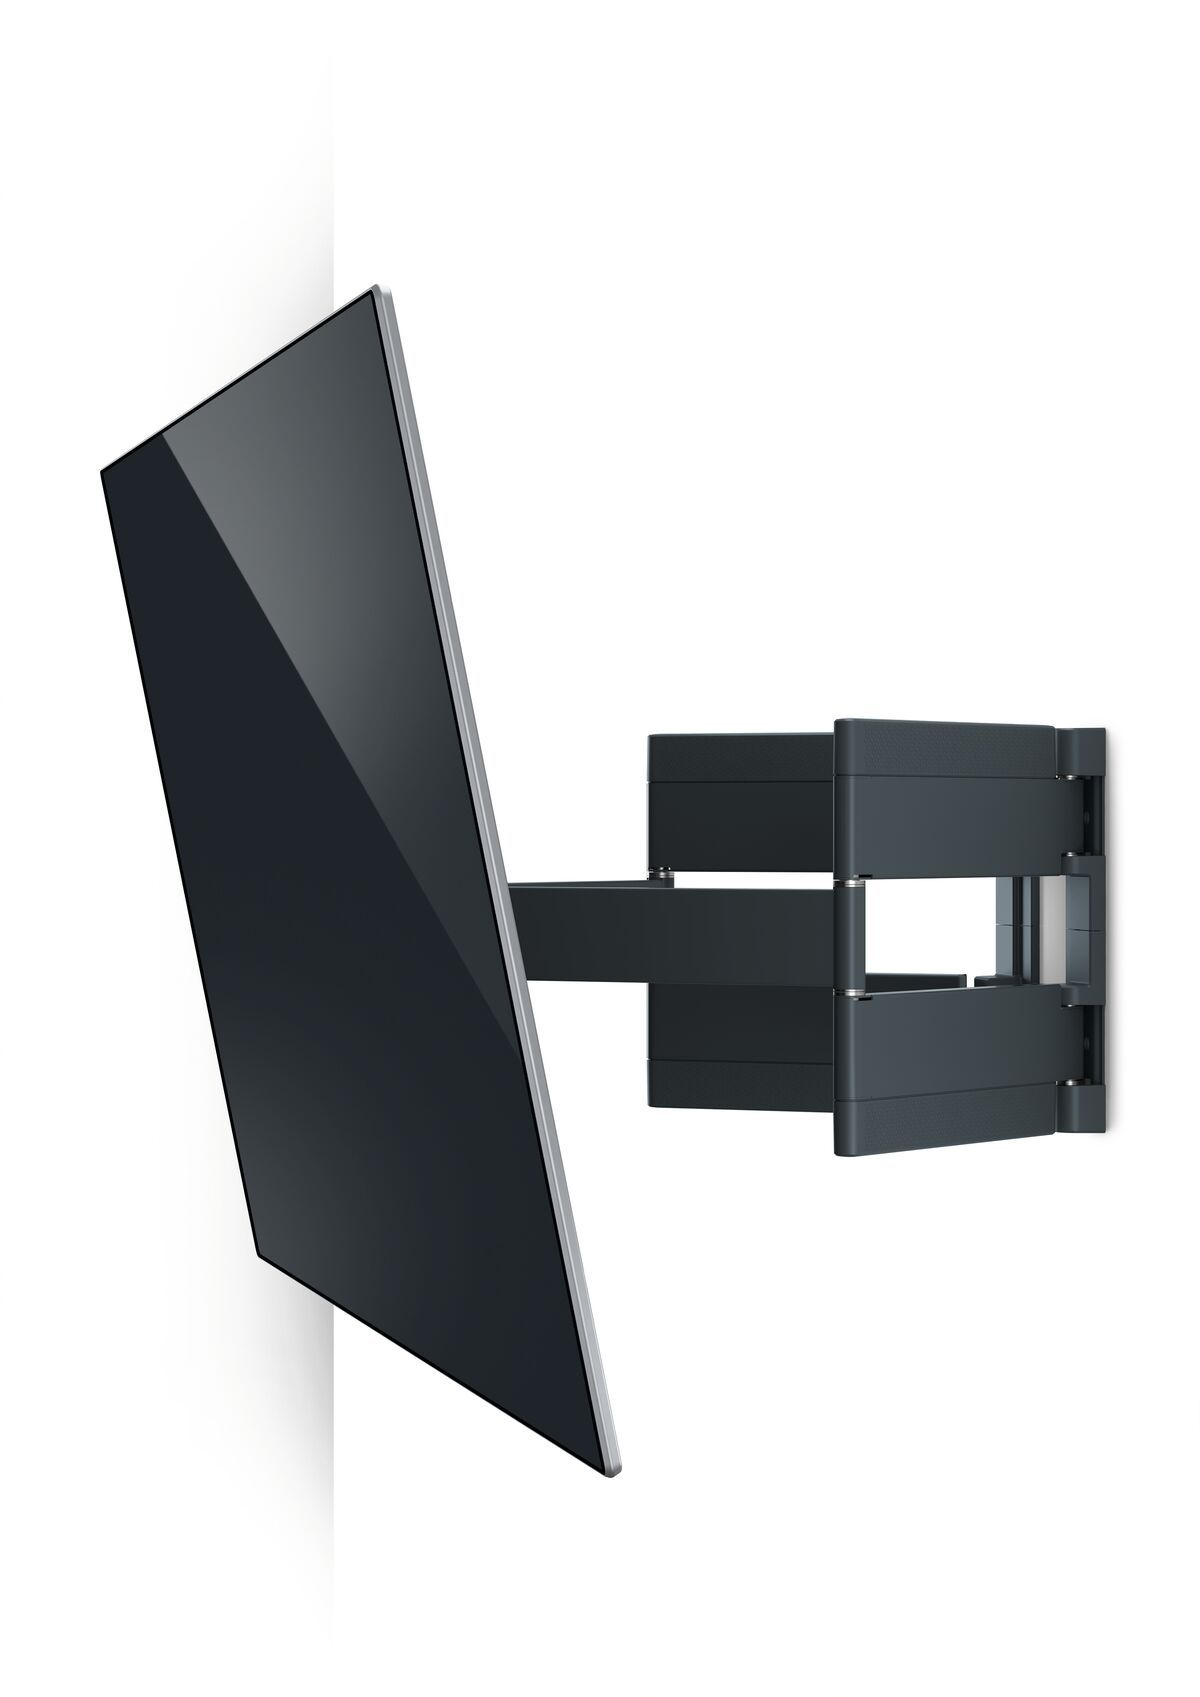 Vogel's THIN 550 ExtraThin Full-Motion TV Wall Mount - Suitable for 40 up to 100 inch TVs - Forward and turning motion (up to 120°) - Tilt up to 20° - White wall